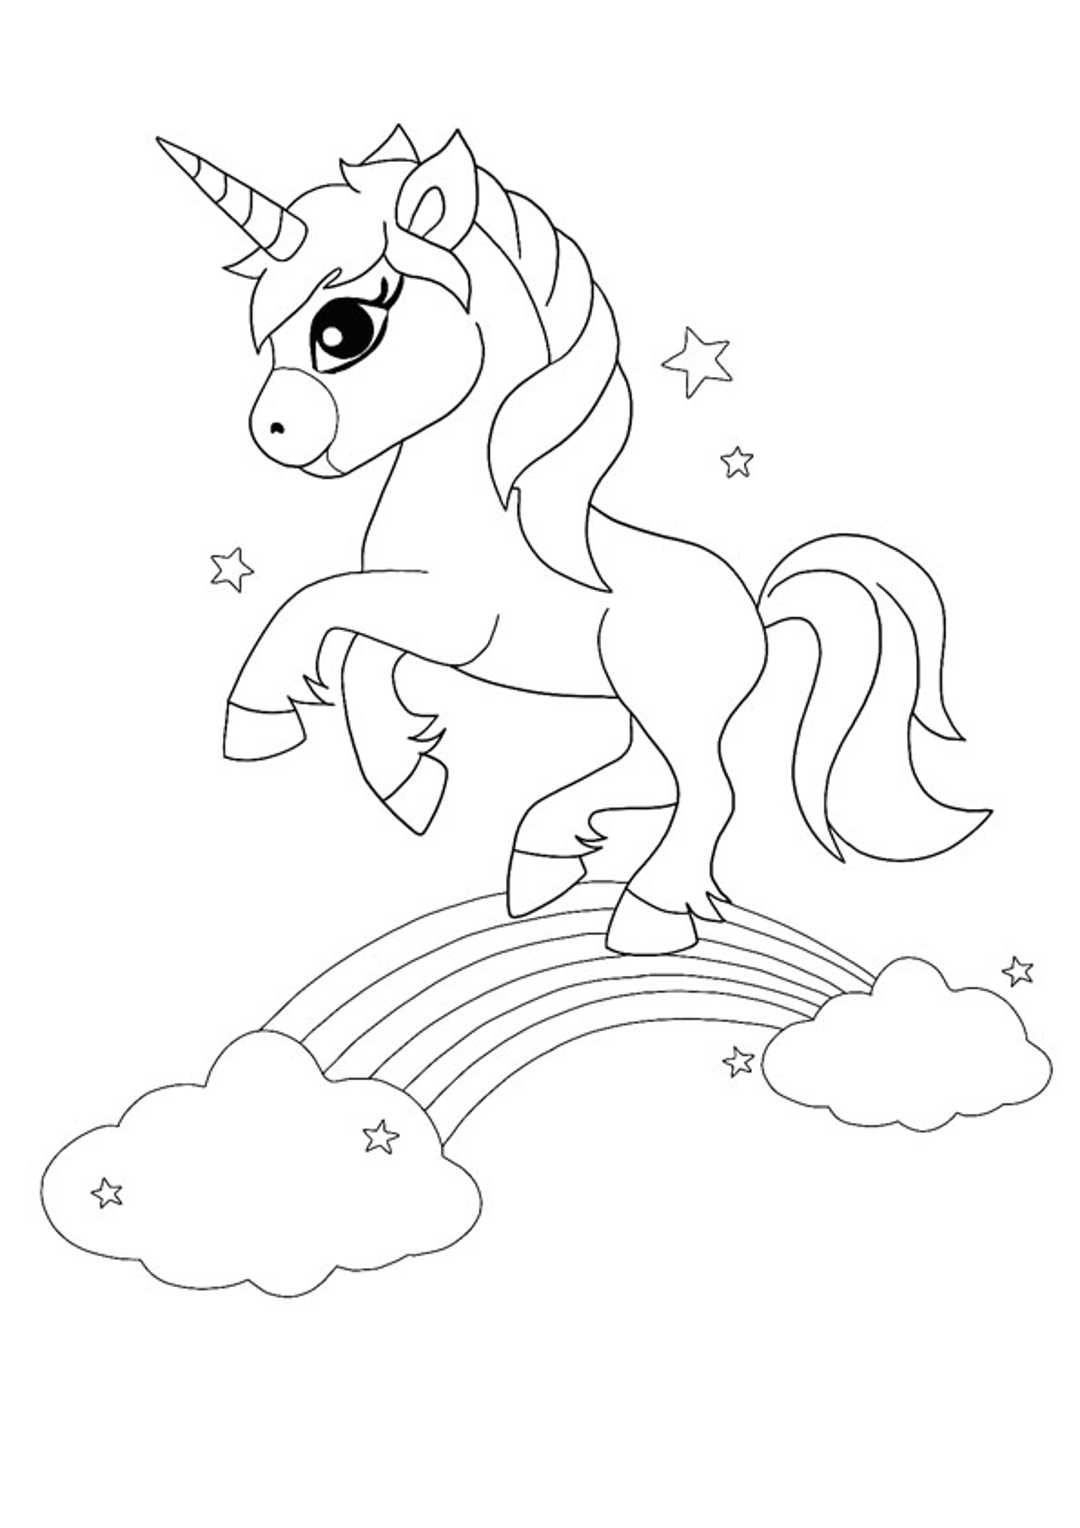 rainbow mermaid coloring pages rainbow dash colouring sheet colouring mermaid rainbow coloring mermaid pages